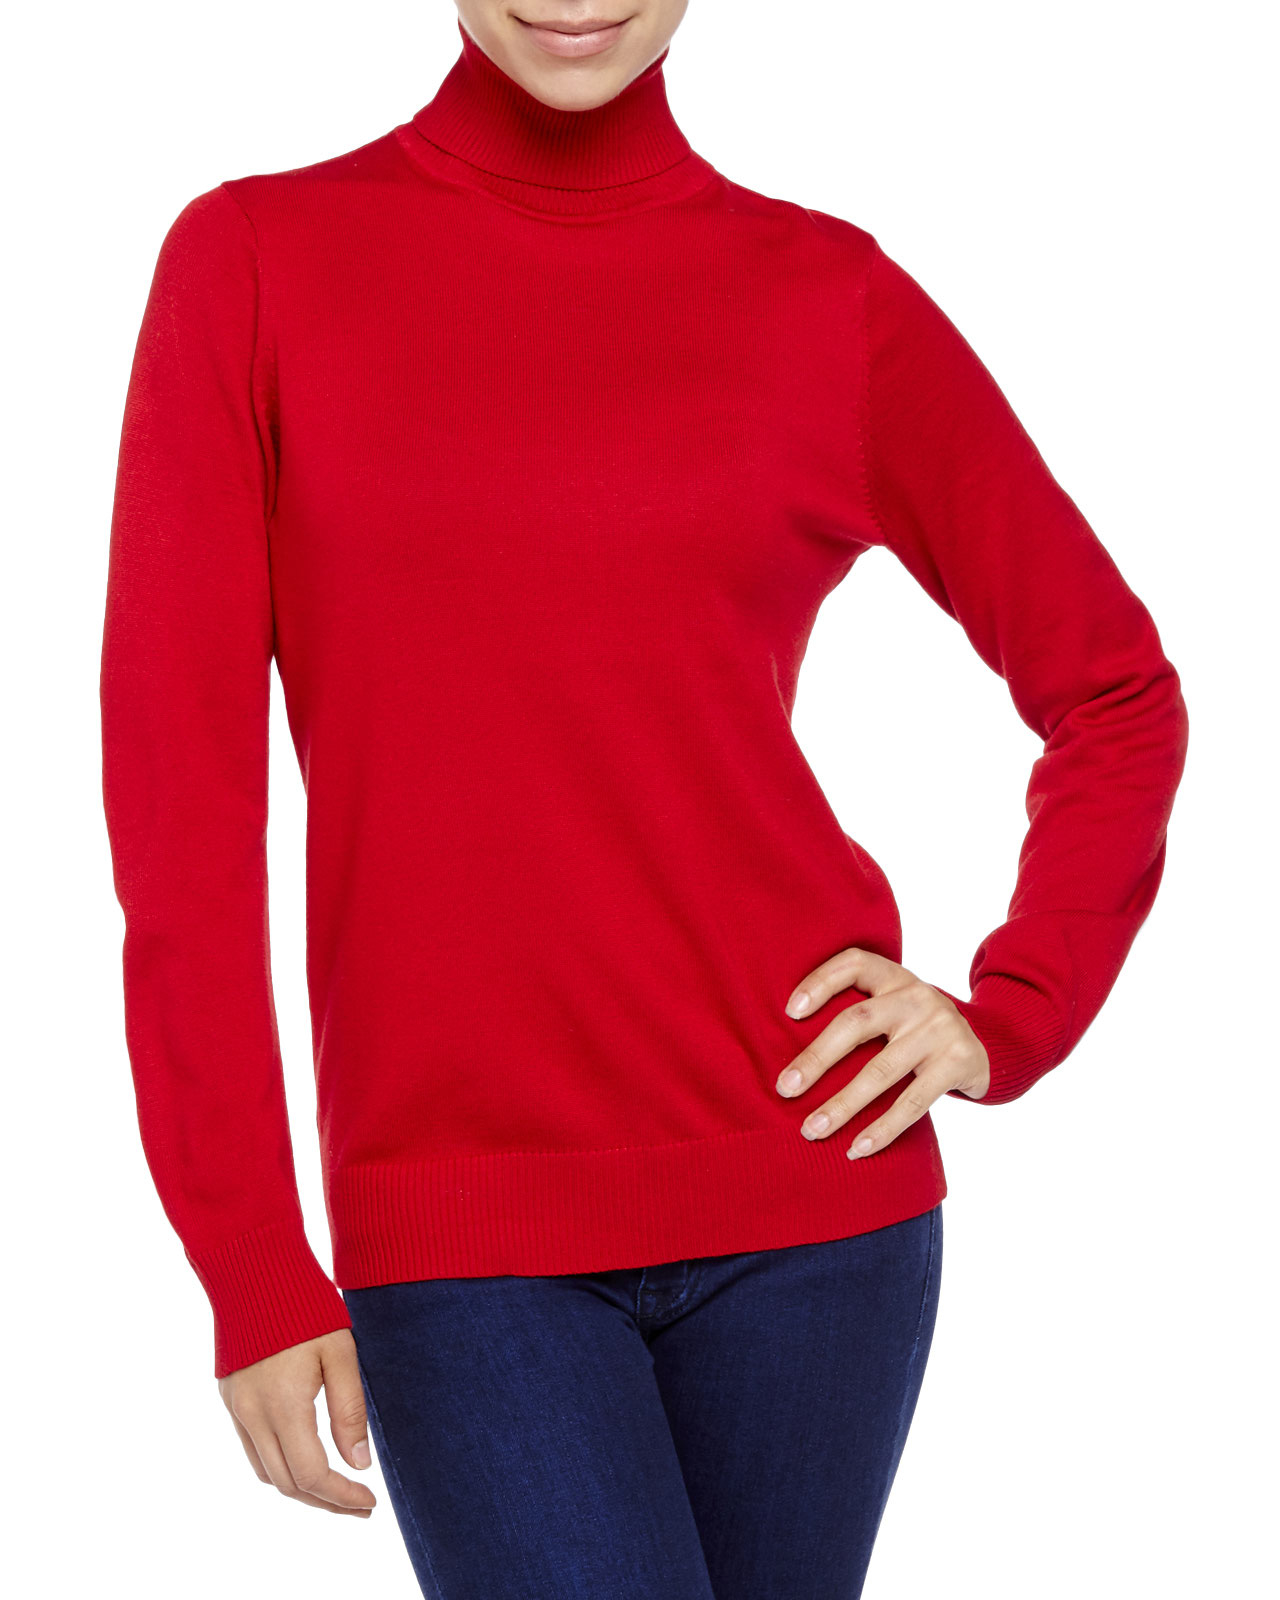 Joseph a Turtleneck Sweater in Red | Lyst